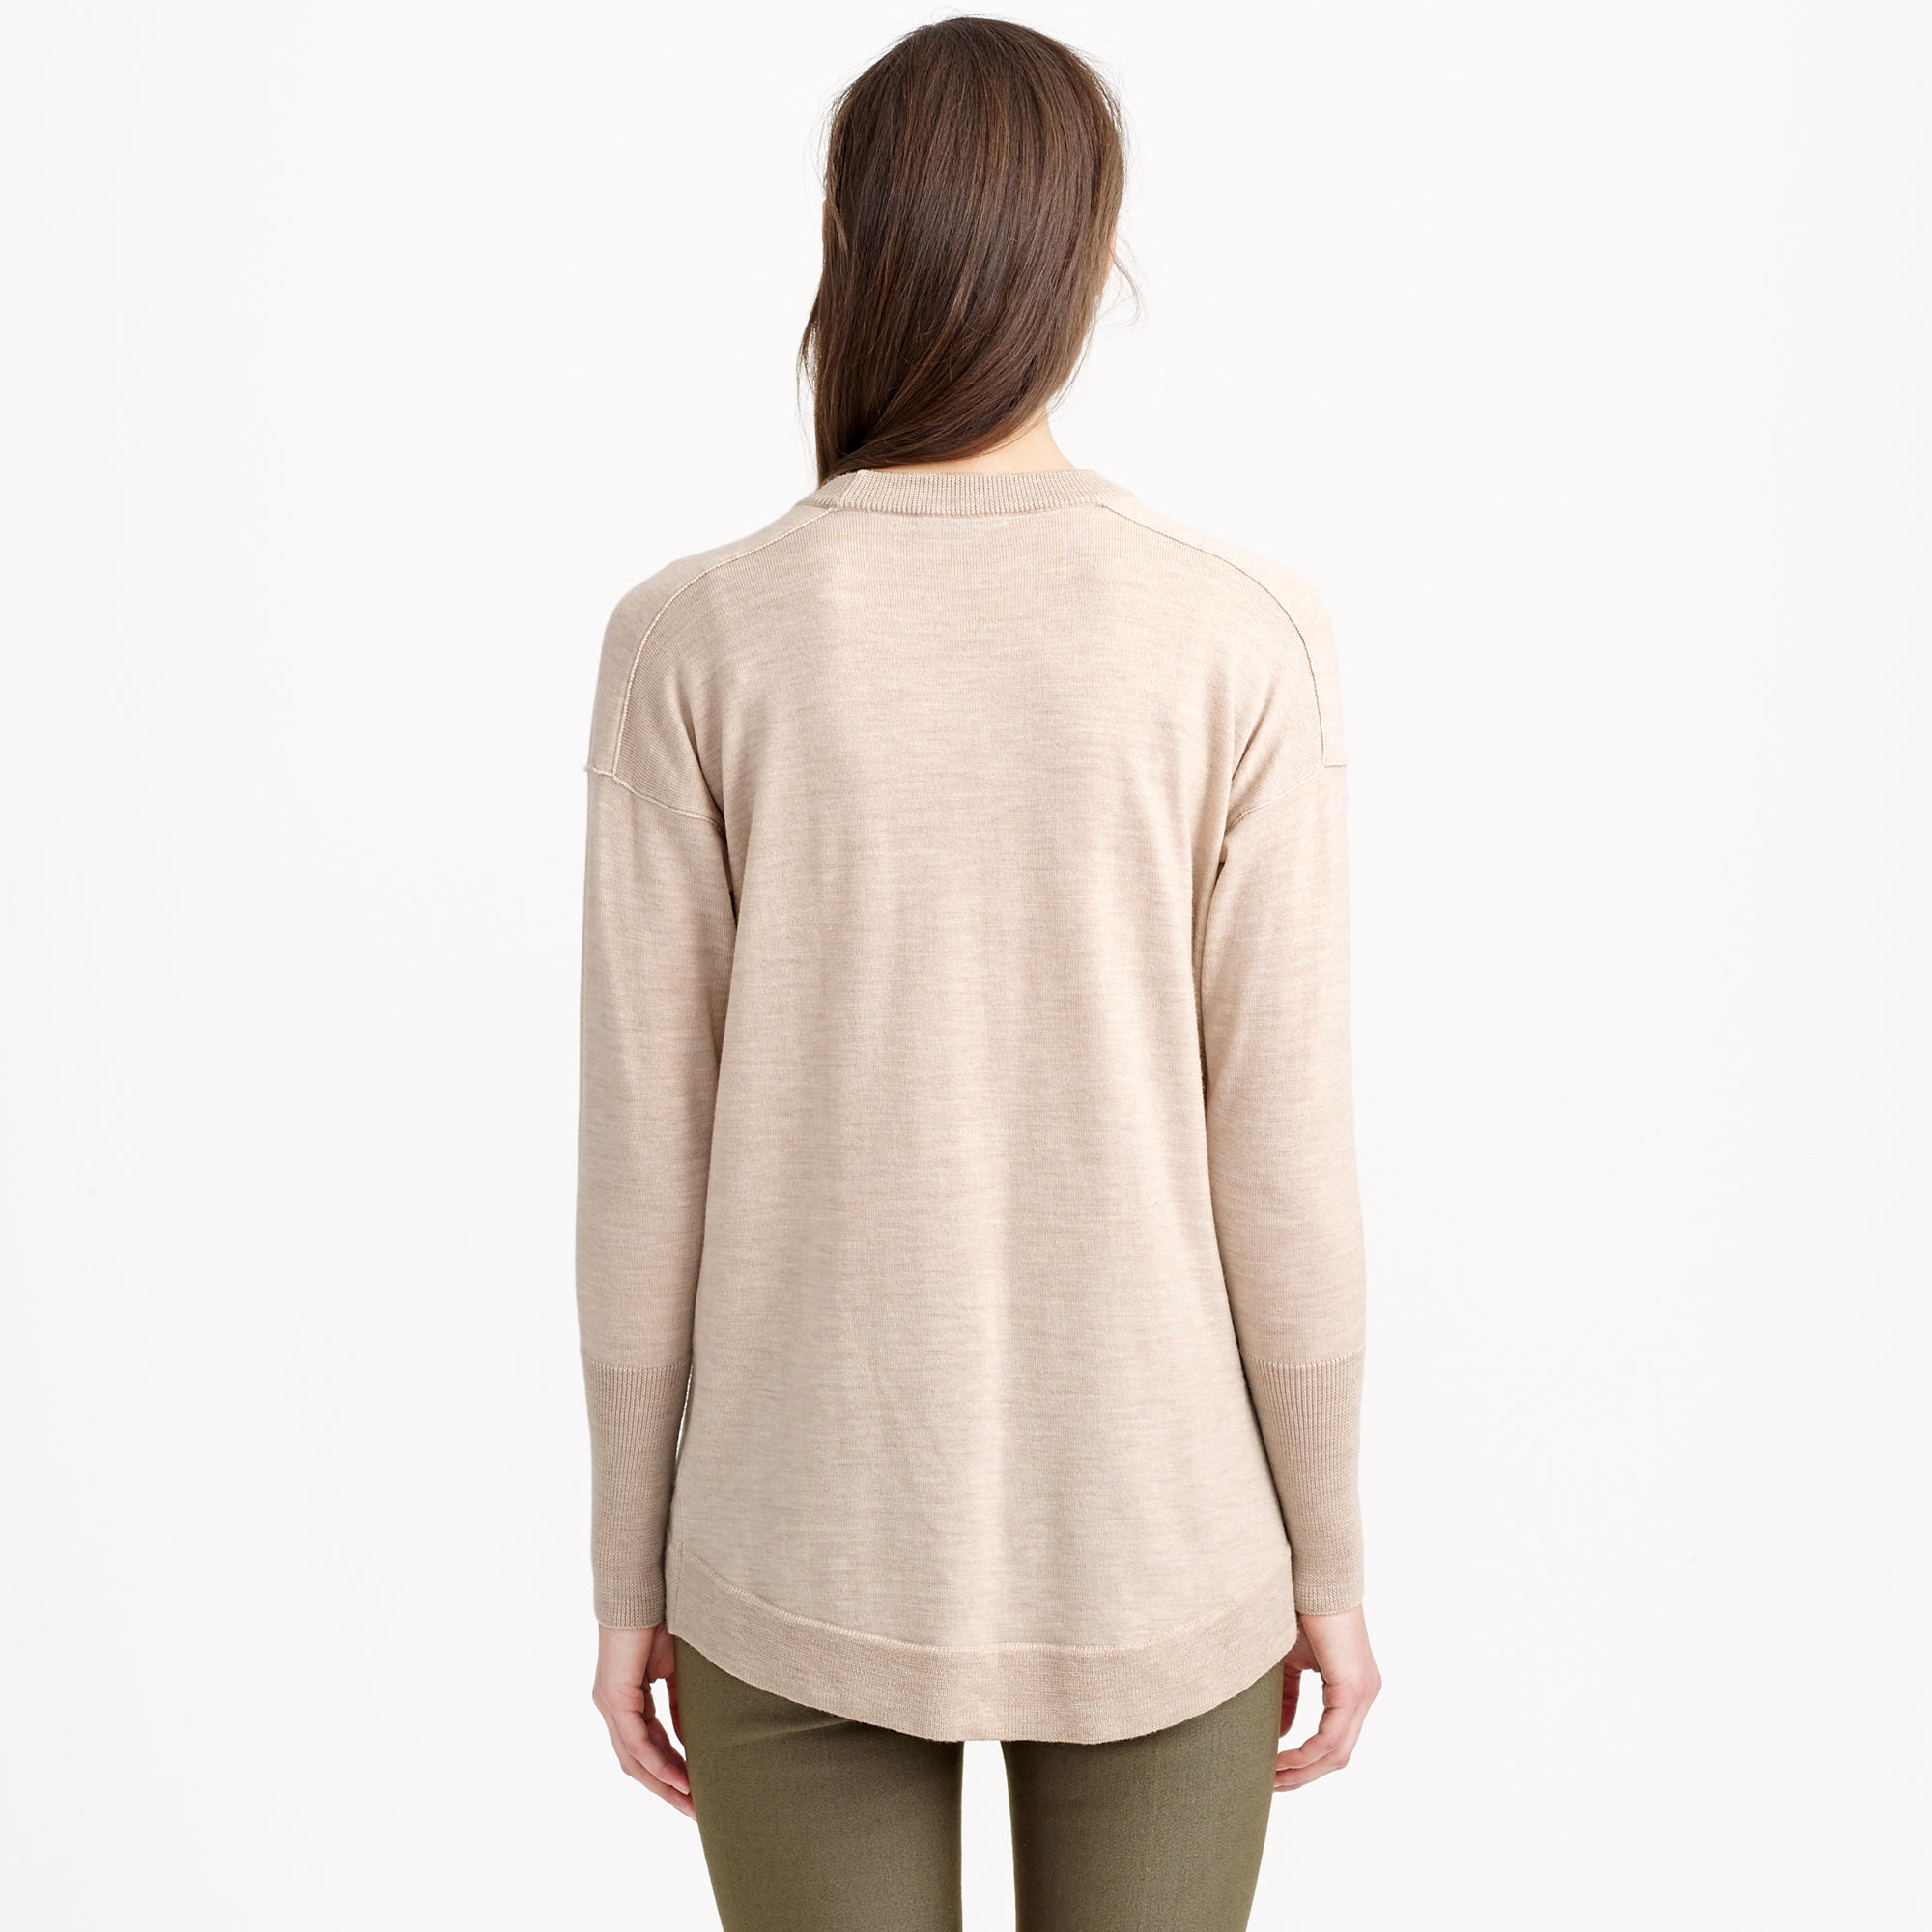 J.crew Merino-cotton Tunic Sweater in Natural | Lyst